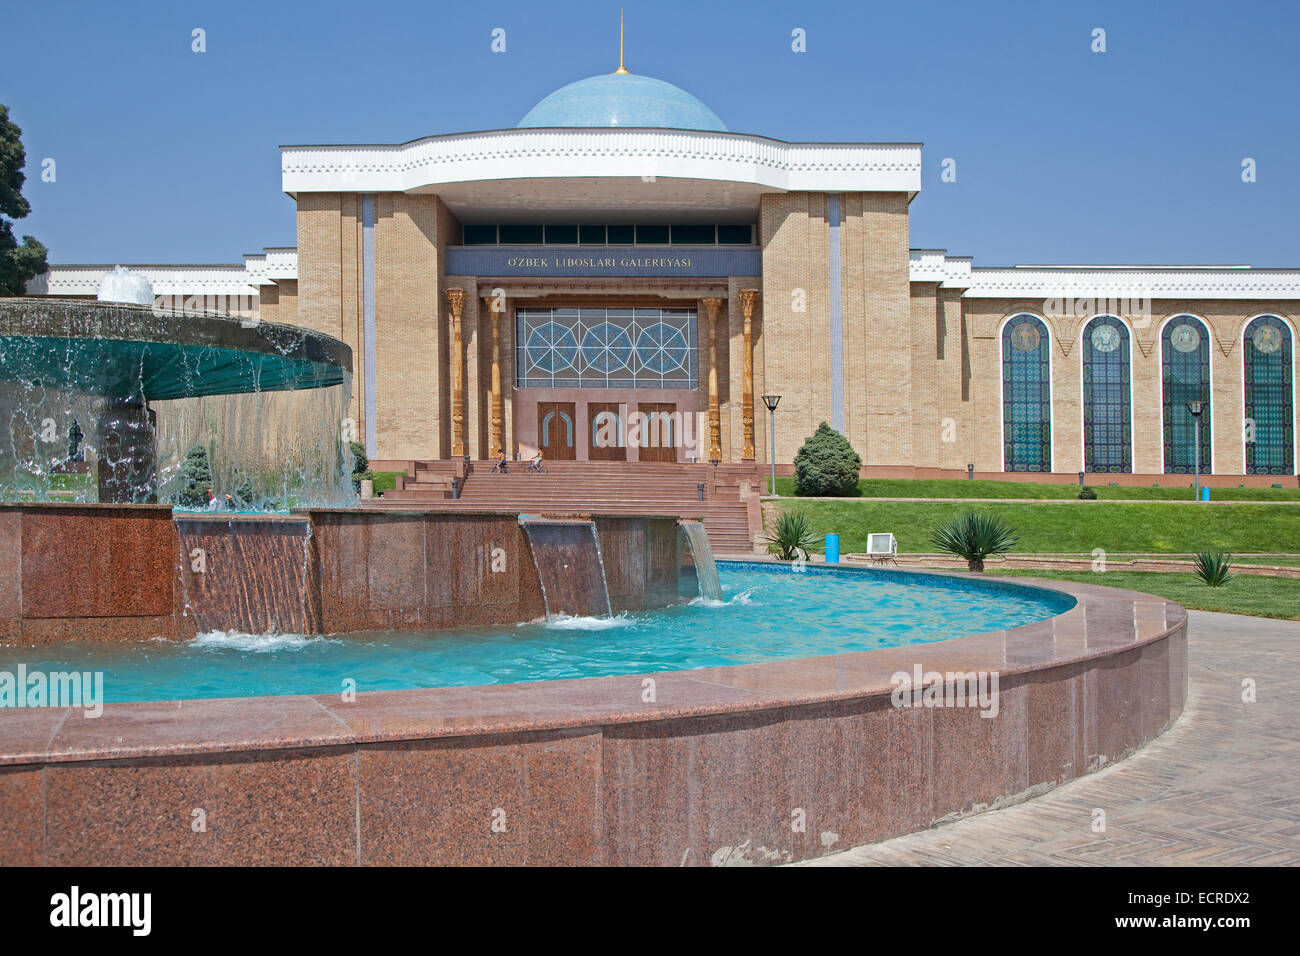 The public library in Russian style architecture in the capital city Tashkent, Uzbekistan - Stock Image